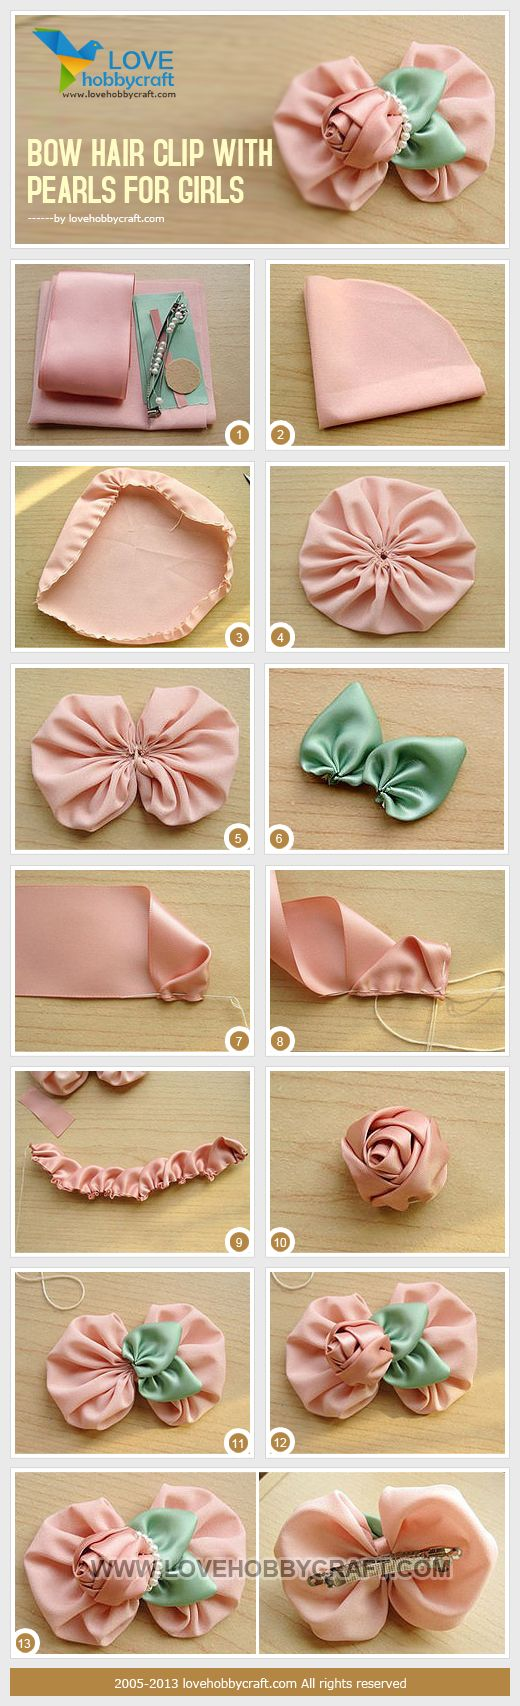 Bow hair clip with pearls for girls